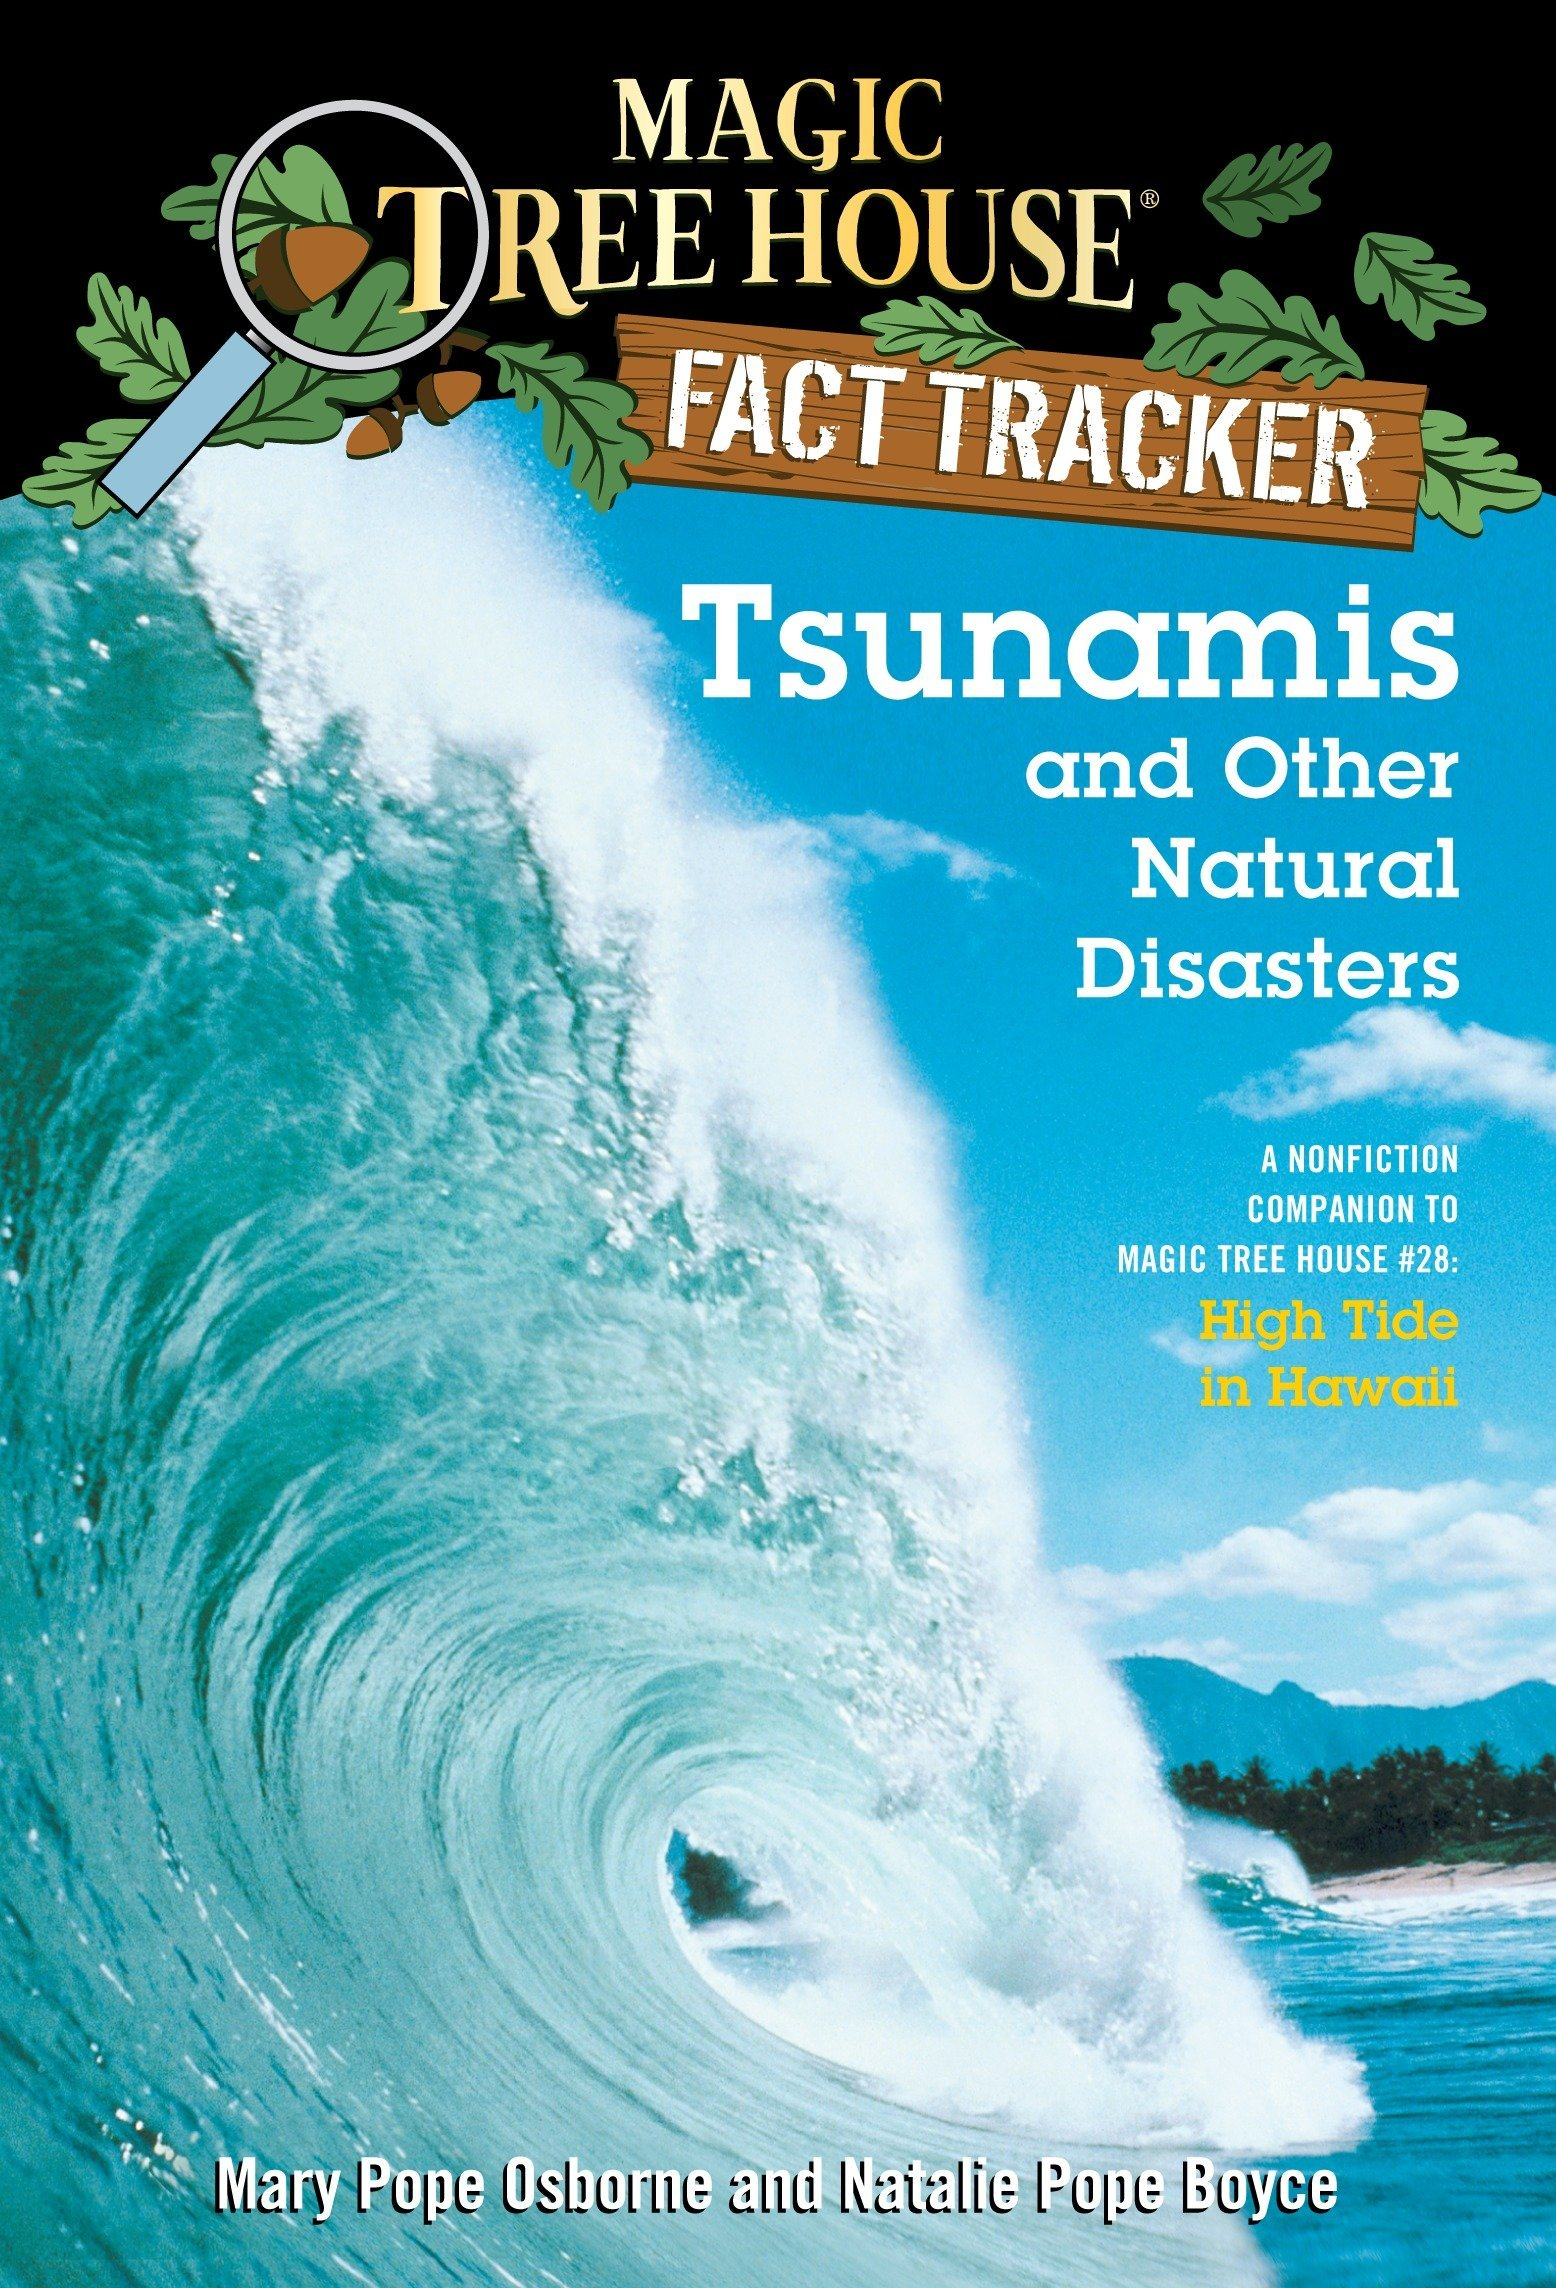 Tsunamis and Other Natural Disasters: A Nonfiction Companion to Magic Tree House #28: High Tide in Hawaii ebook